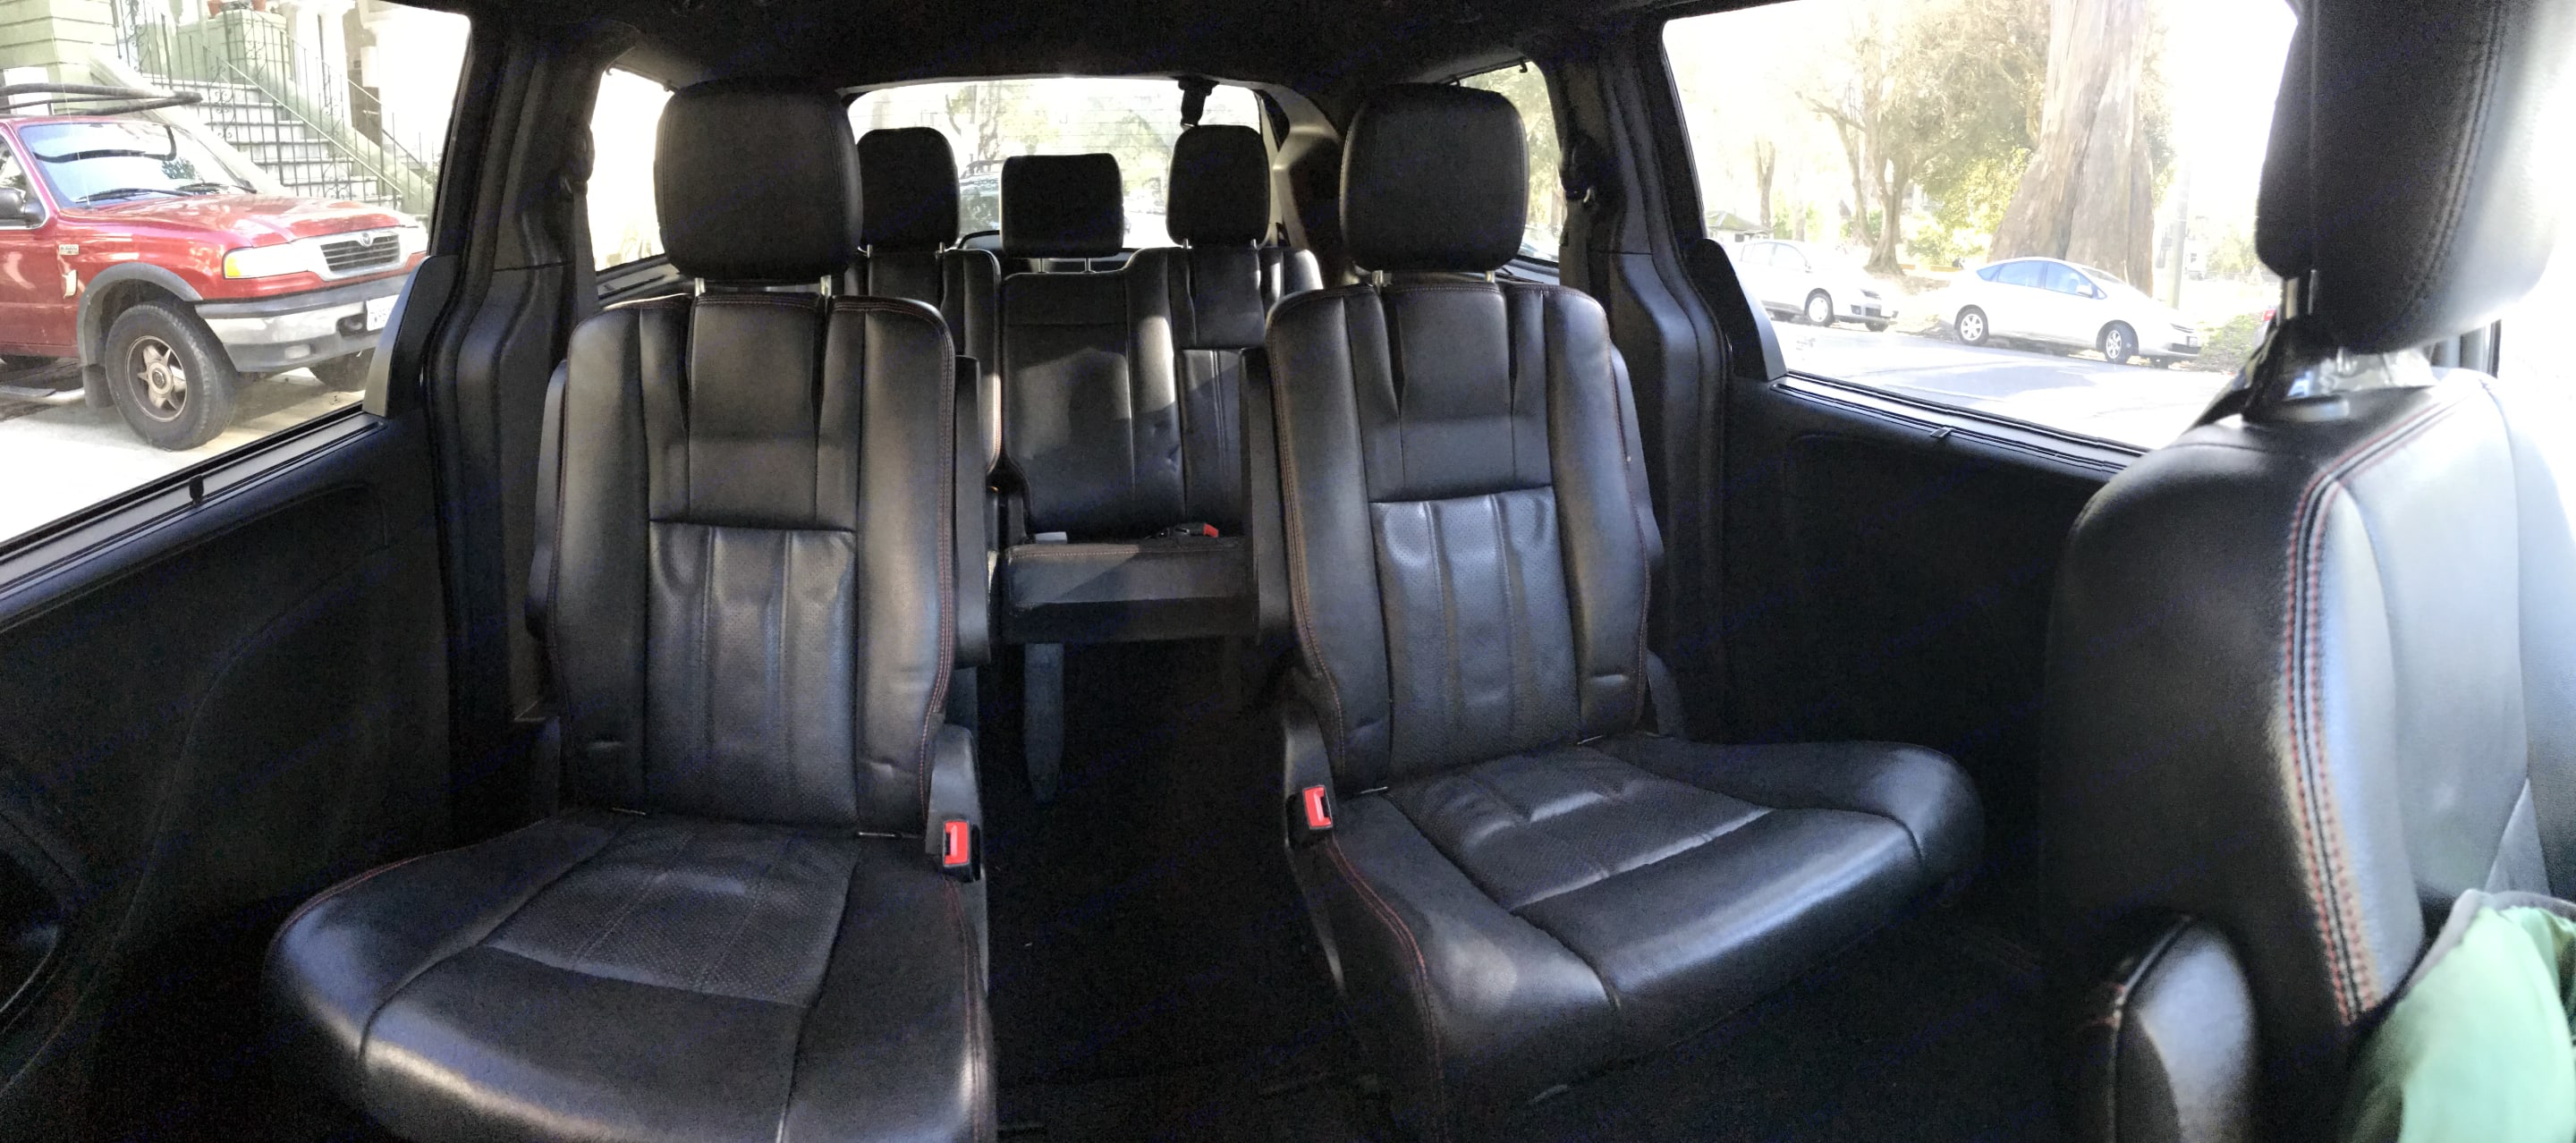 all of the back seats easily fold up and down (fully into the floor), seats 7 total. Dodge Grand Caravan 2013